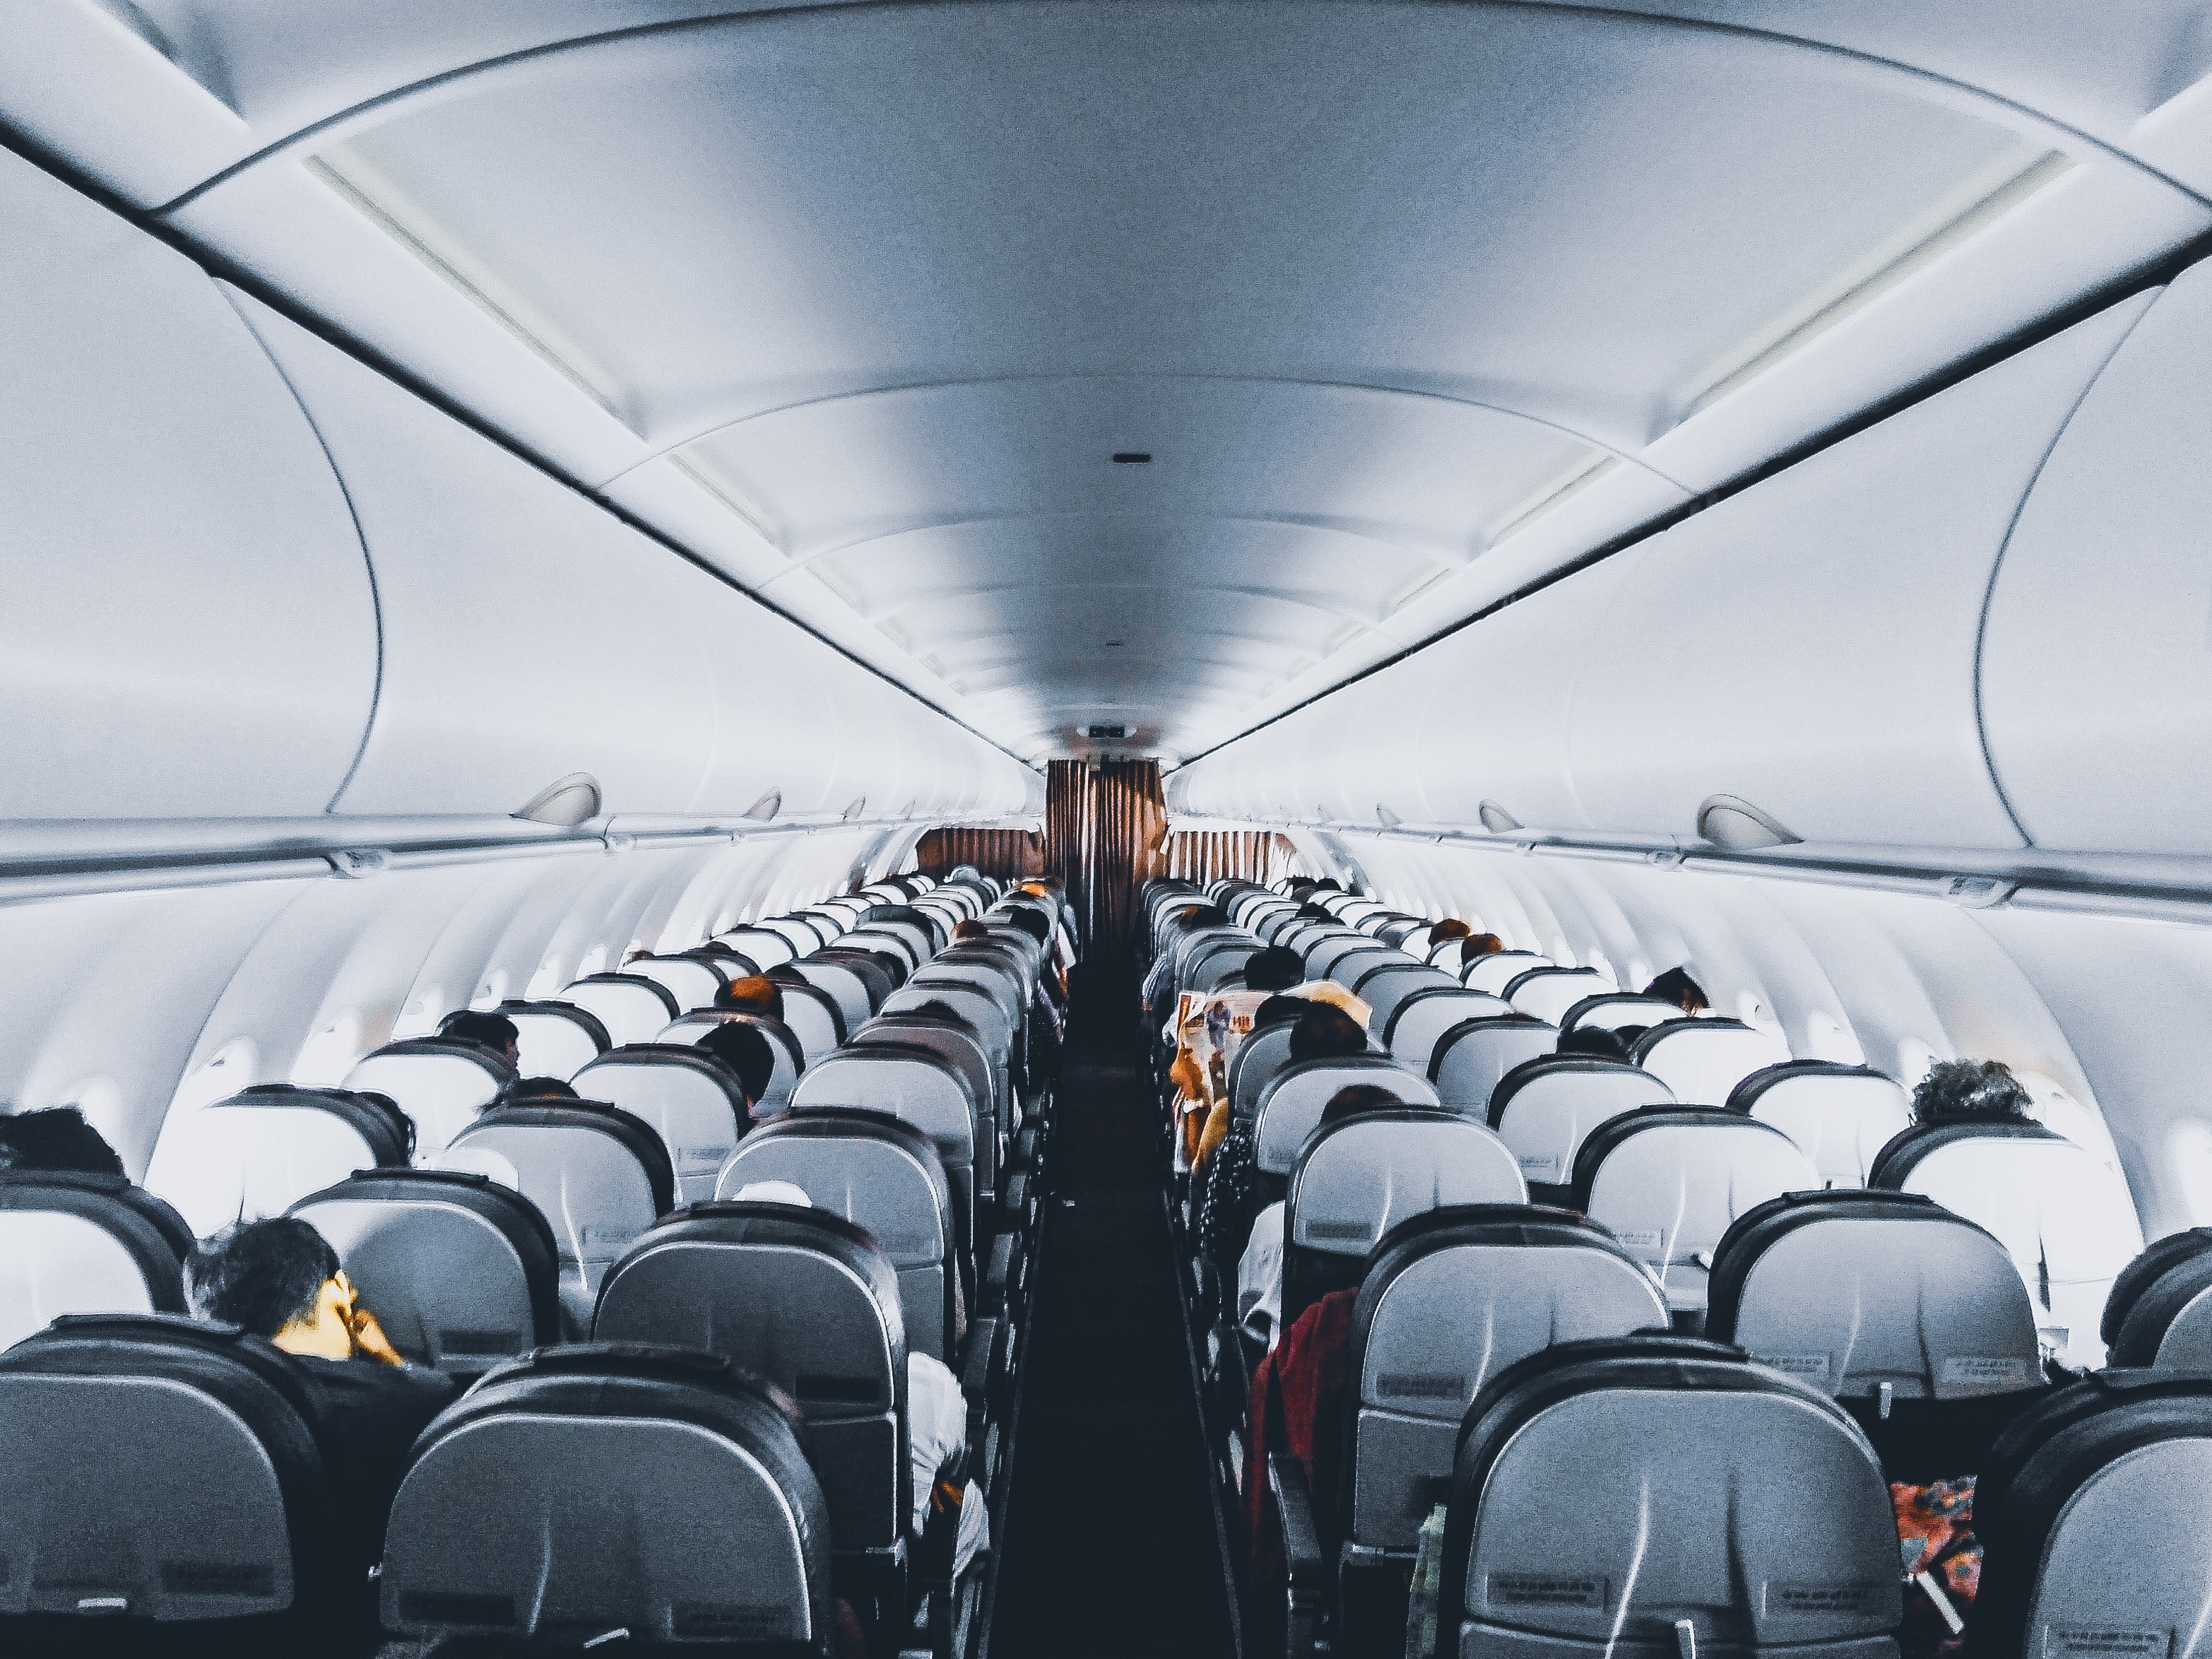 Pictured - People inside a commercial airplane | Source: Pexels